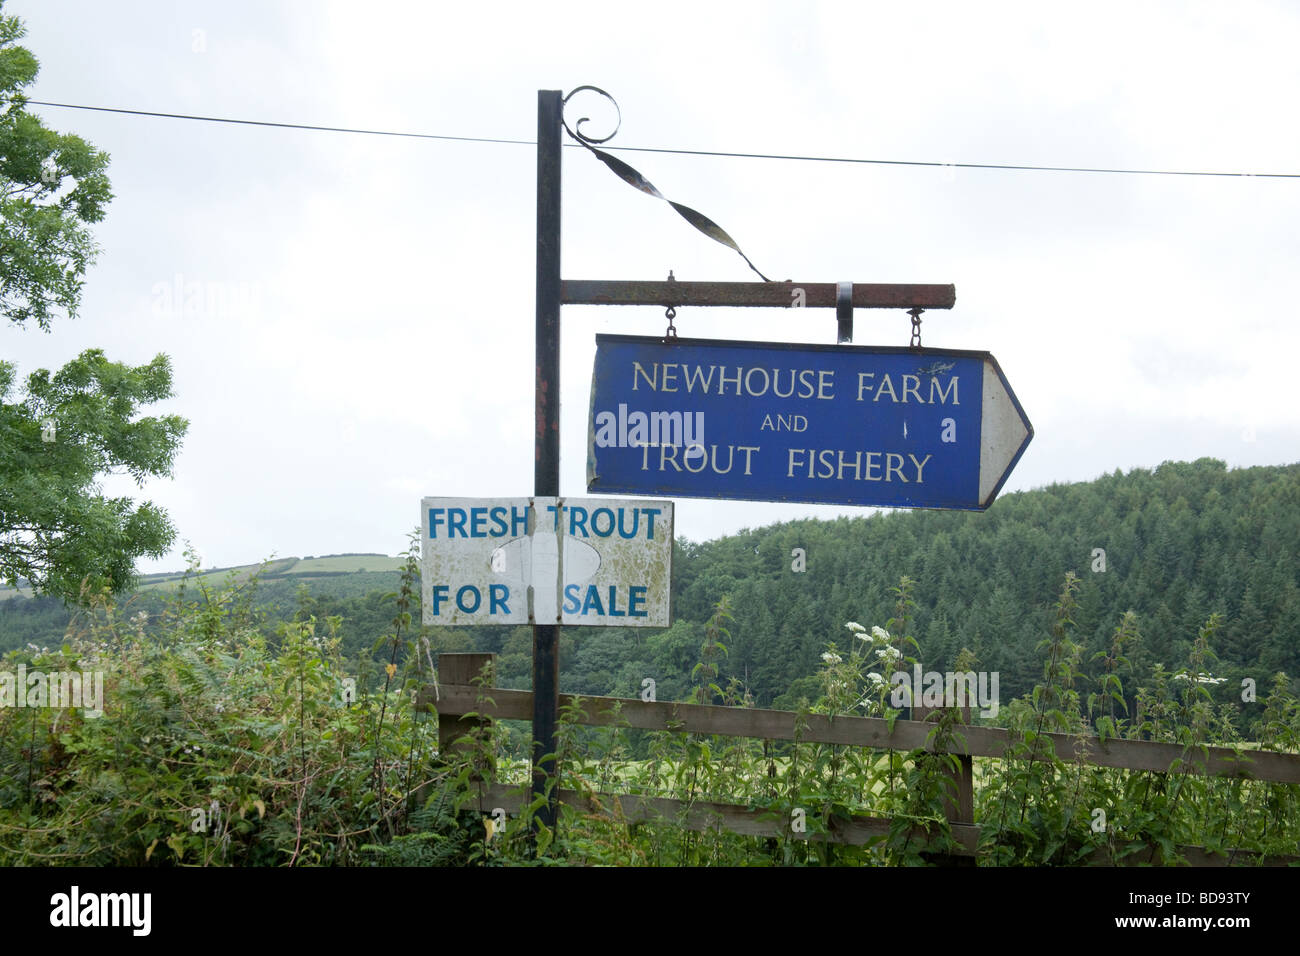 Sign for Newhouse farm trout Fisheries Devon England - Stock Image